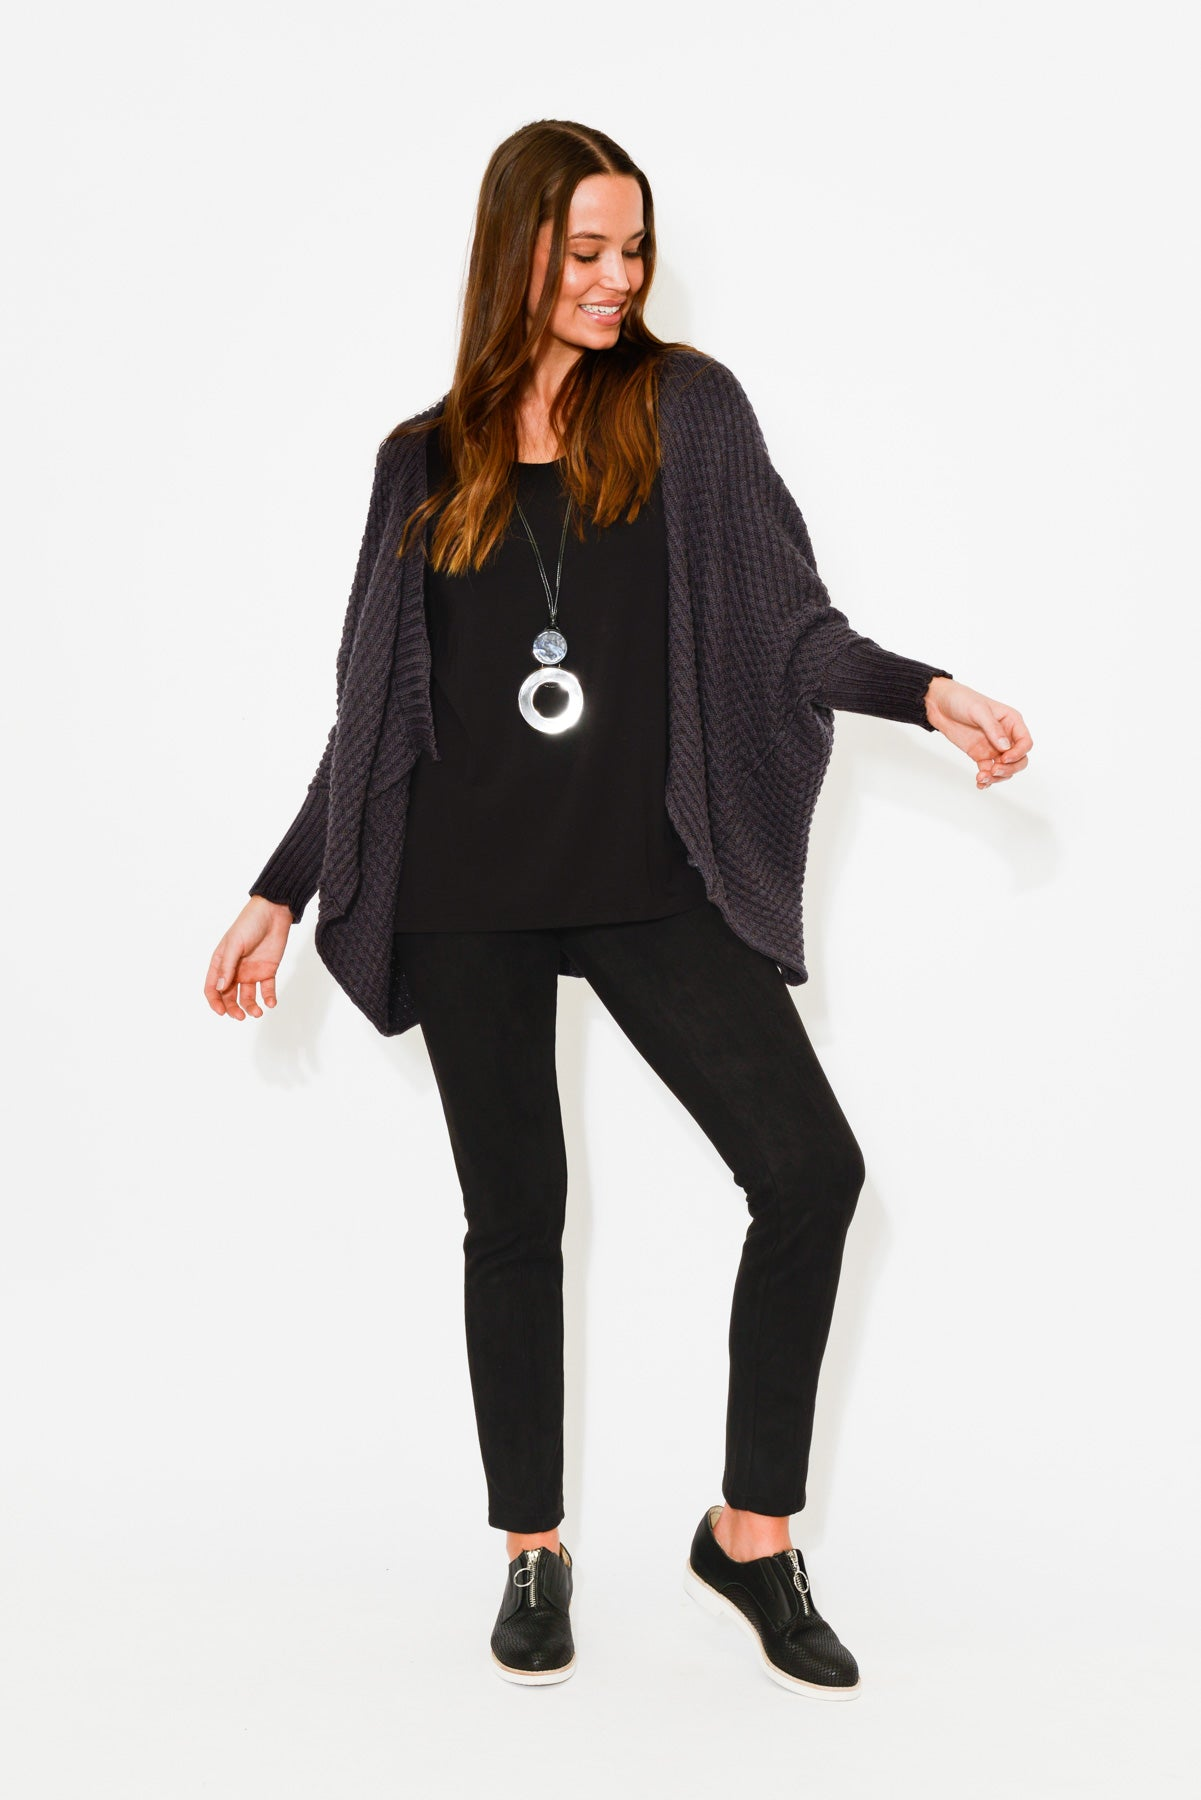 Bellamy Charcoal Merino Wool Cardigan - Blue Bungalow